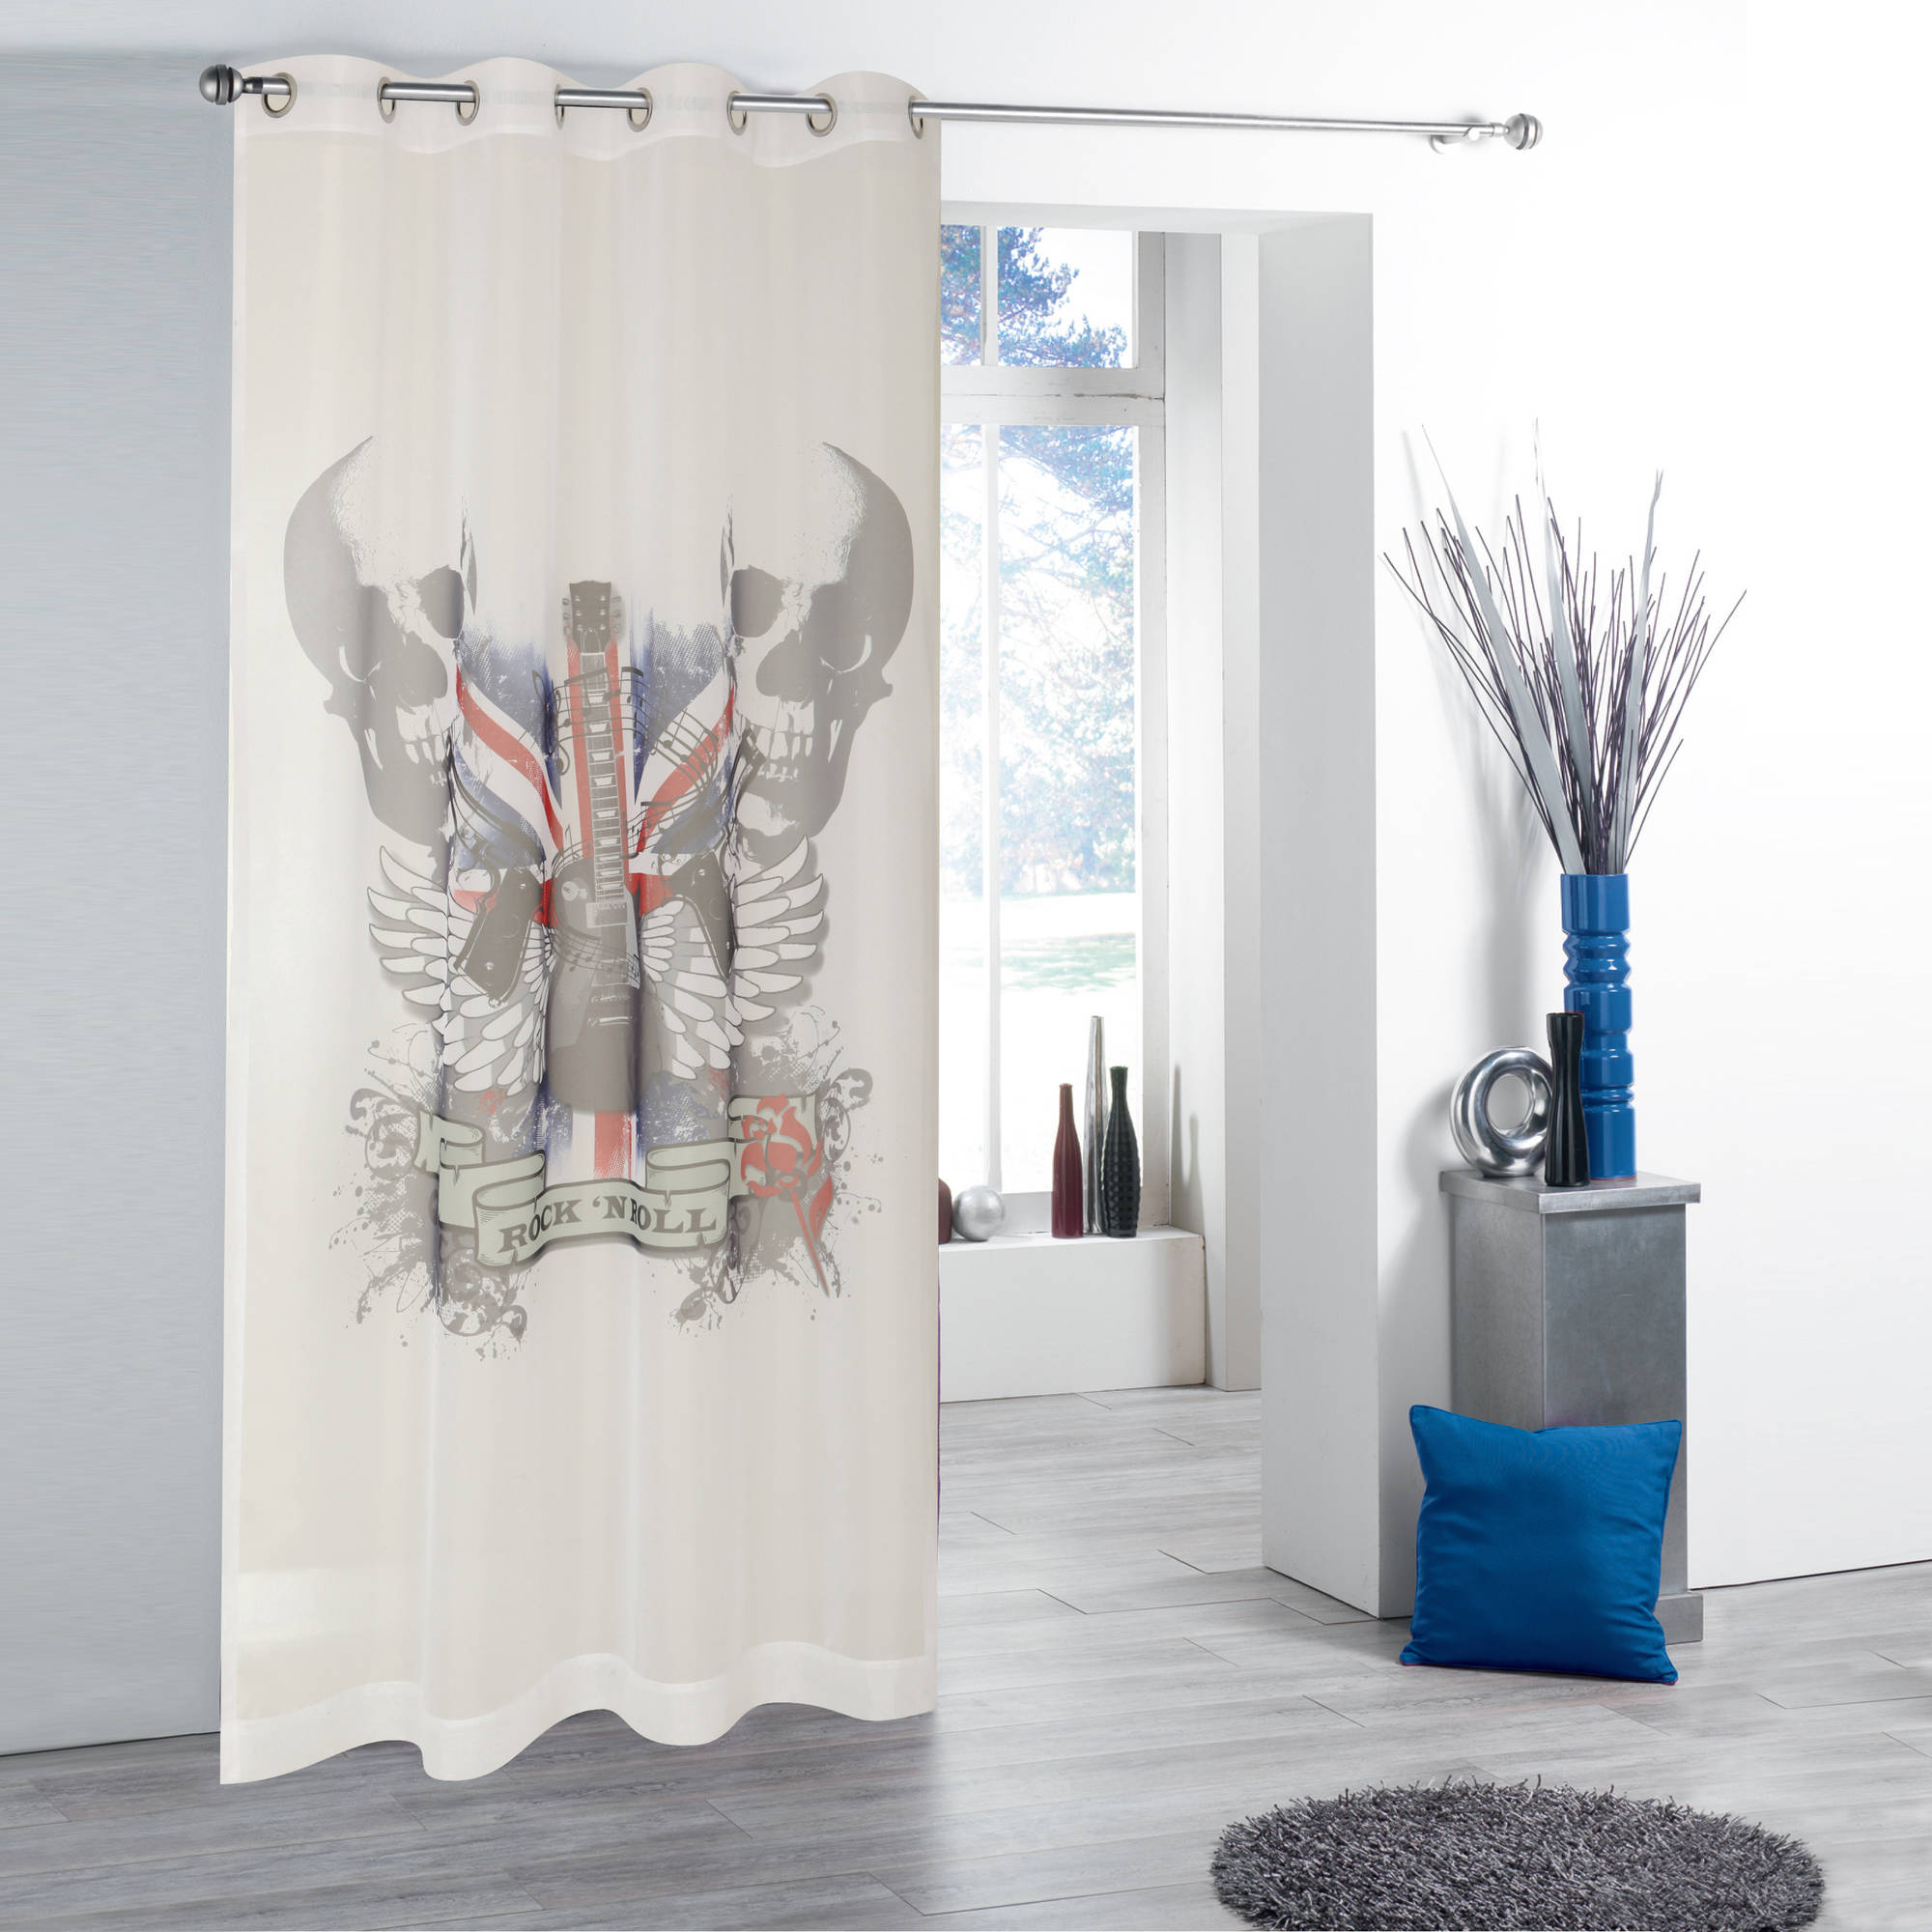 Photo Real Sheers British Invasion Window Curtain Panel